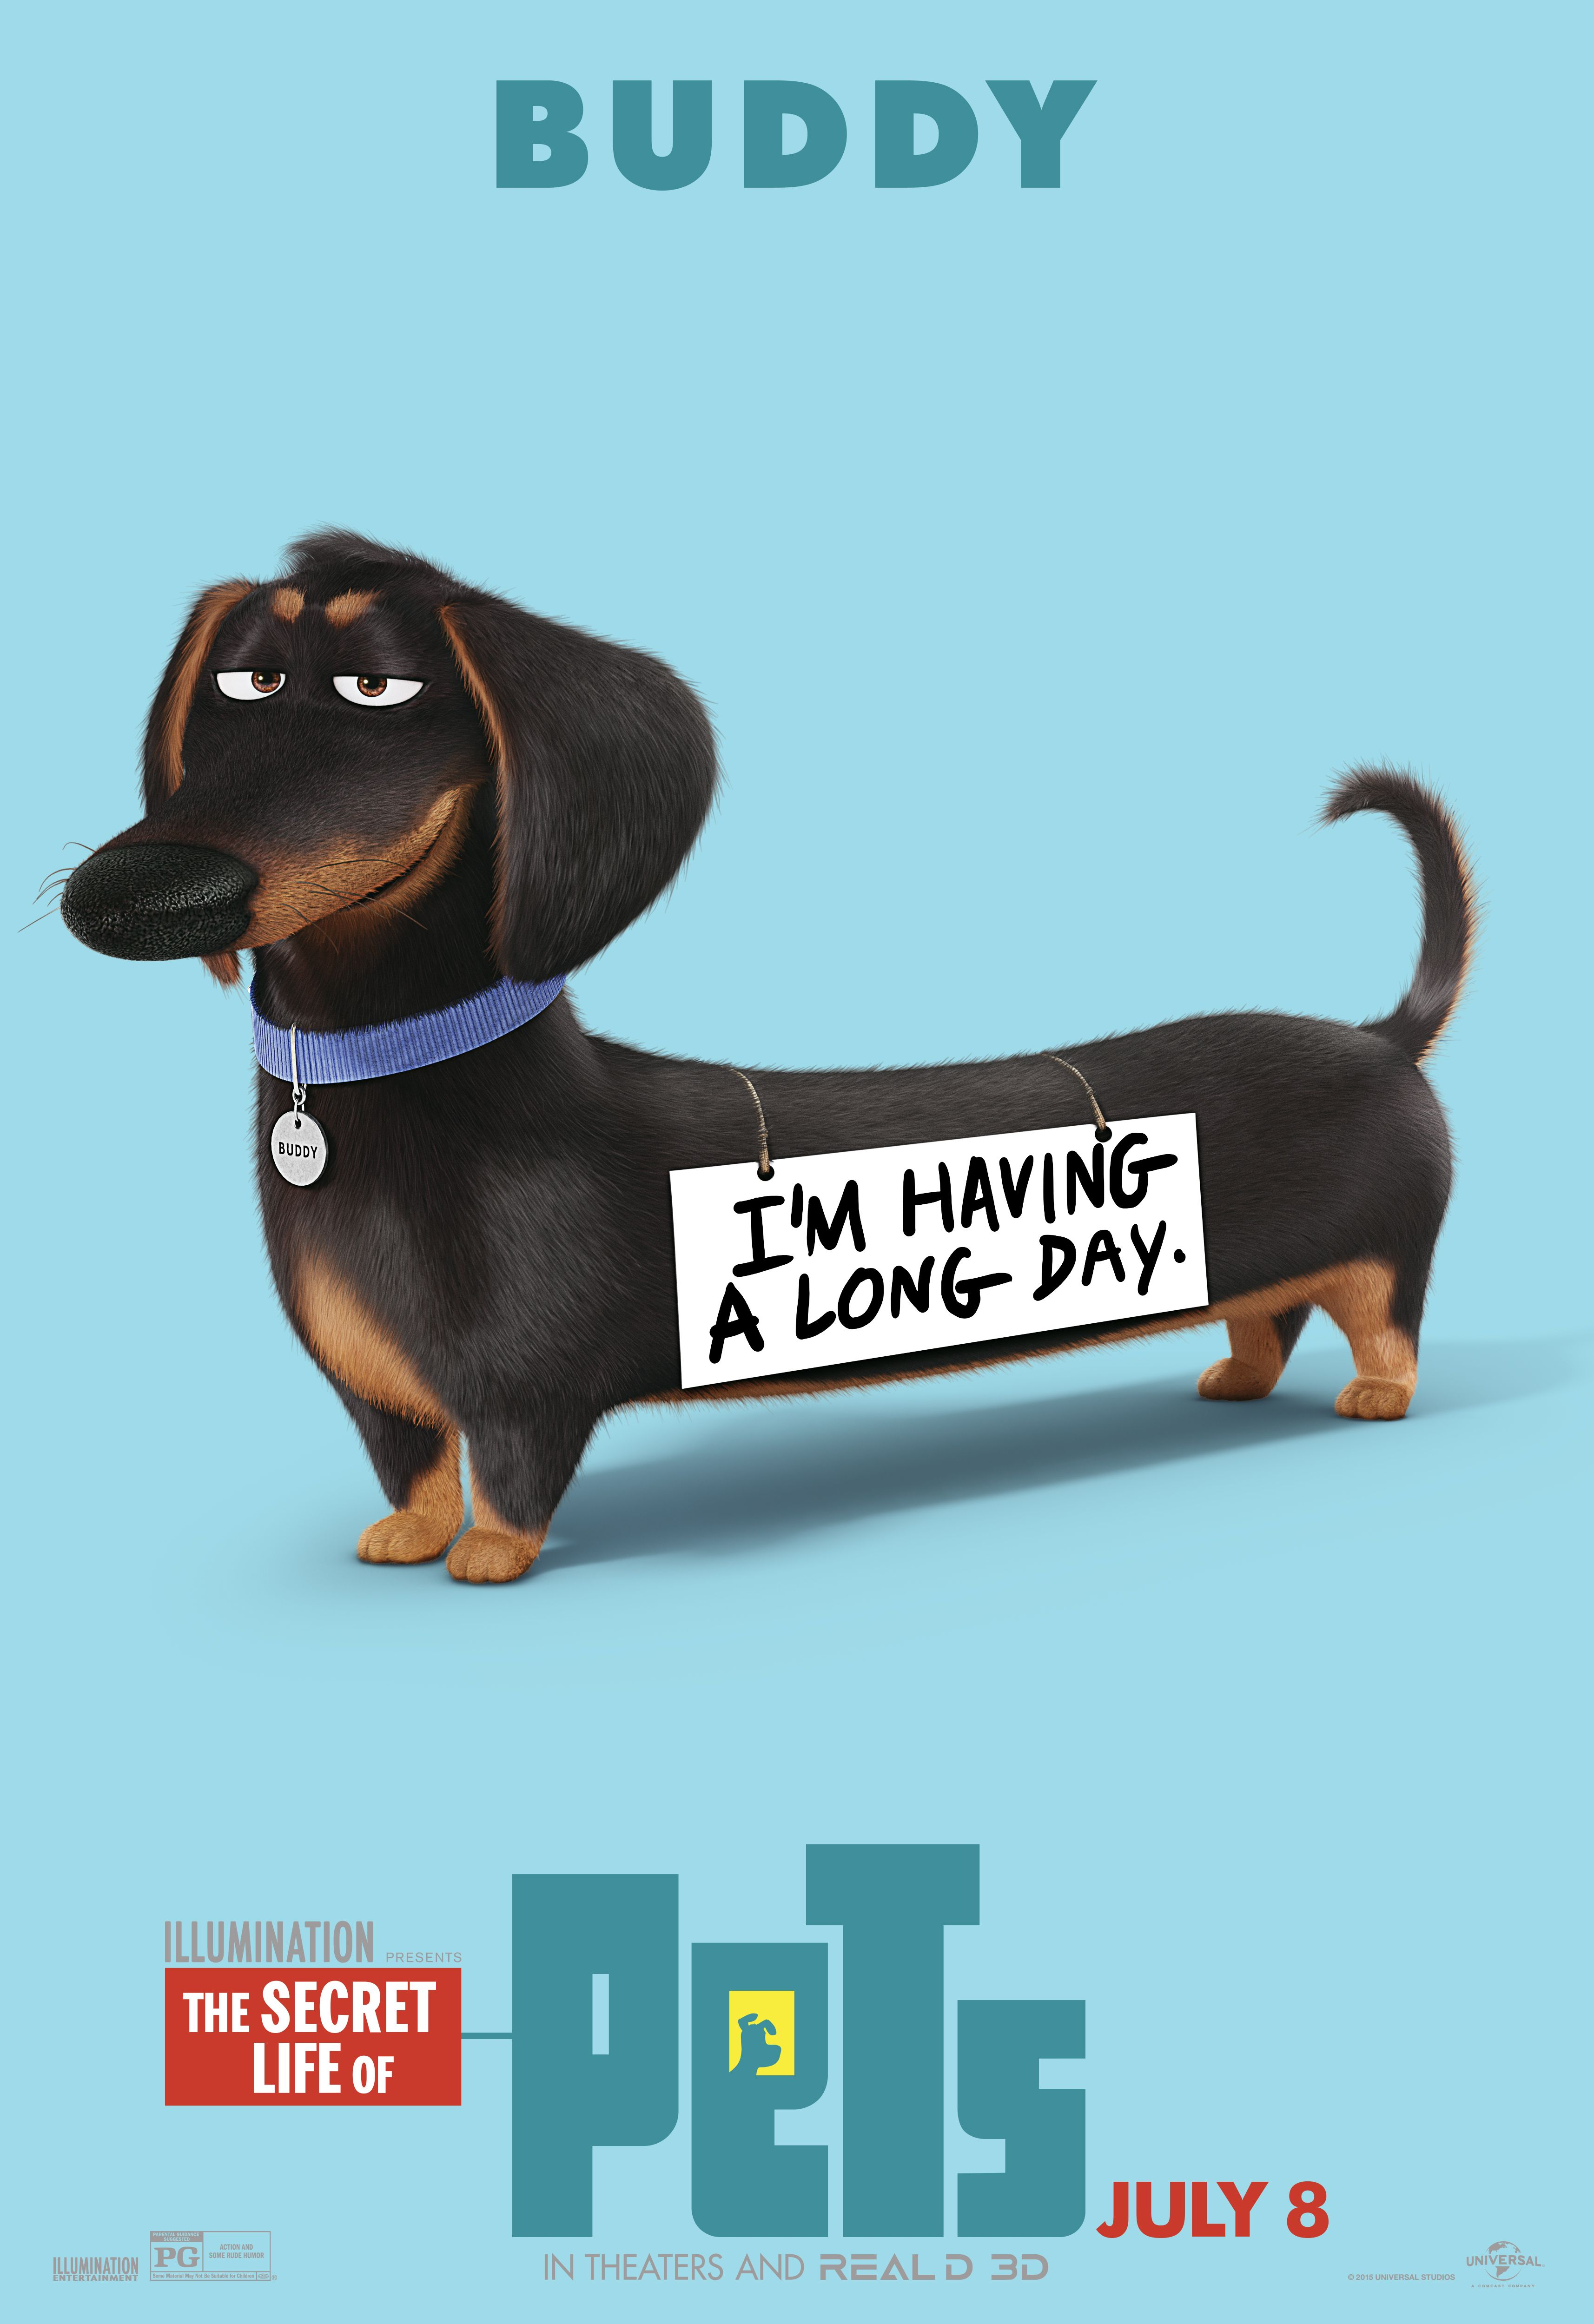 Here Are A Bunch Of Really Cute Character Posters From The Secret Life Of  Pets.  Pet Poster